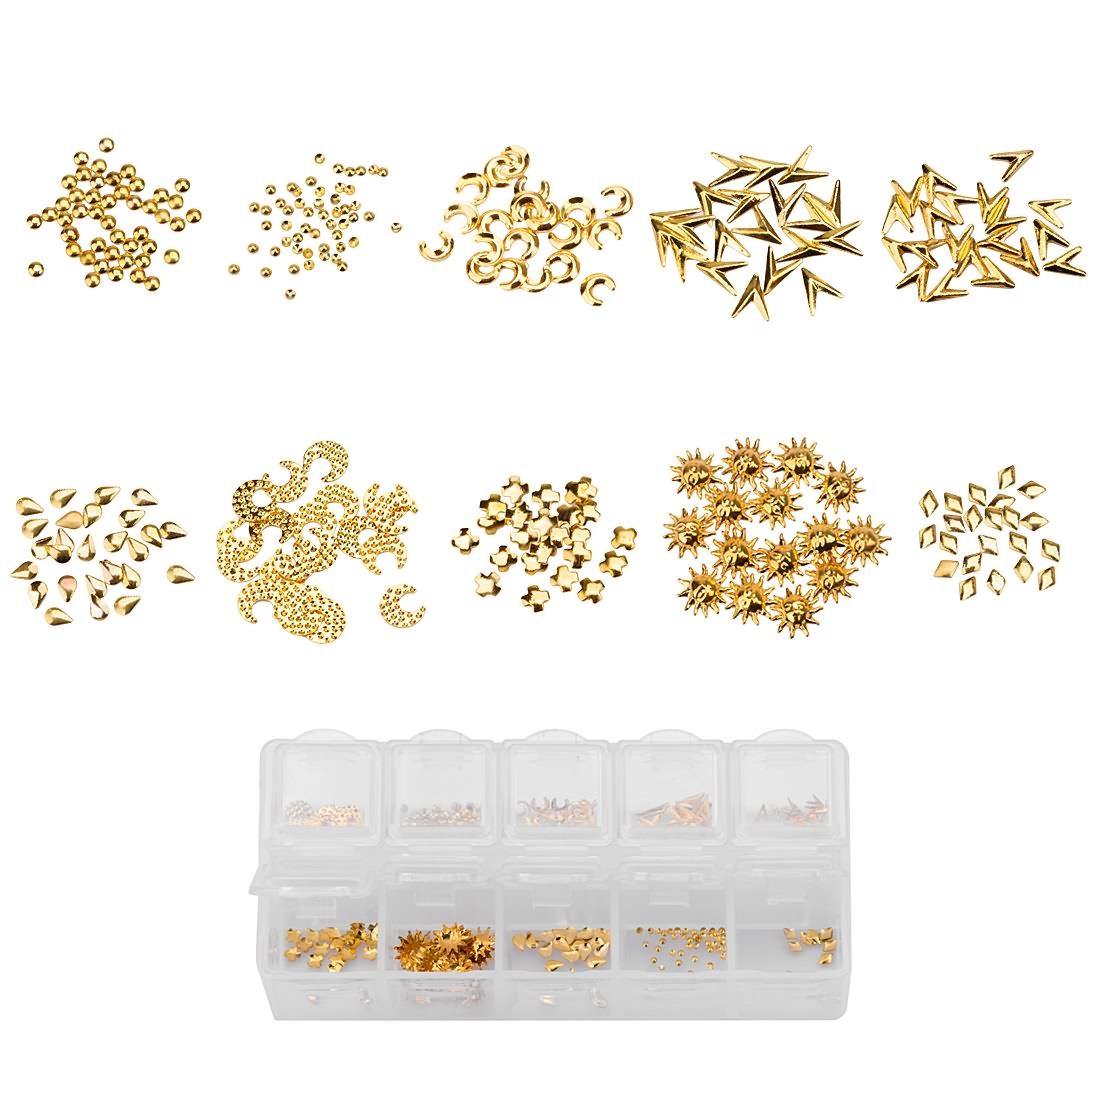 BMC 10 Mix Design Gold Colored Nail Art Metal Studs - The Golden Goddess